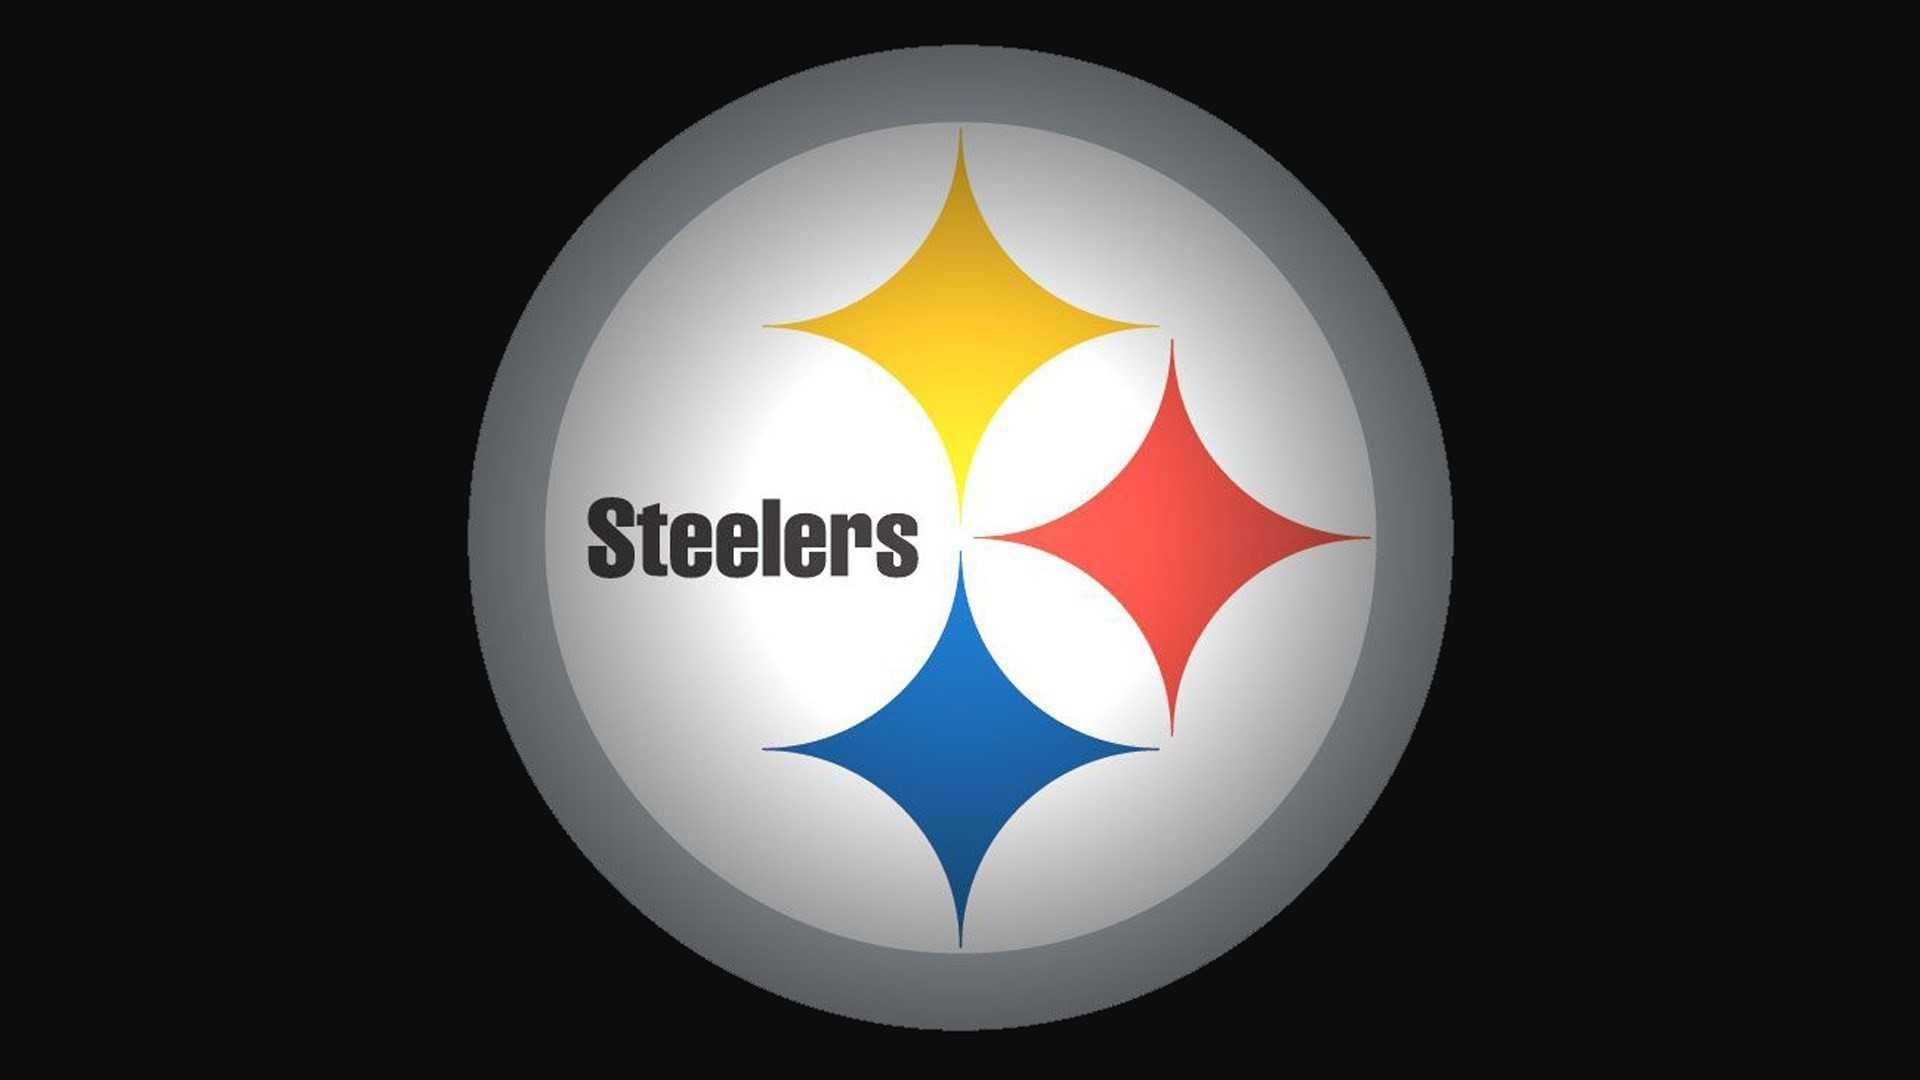 Res: 1920x1080, 1080x1920 iPhone - iPhone 6 Sports Wallpaper Thread | Page 72 | MacRumors  Forums Steelers Wallpapers 2017